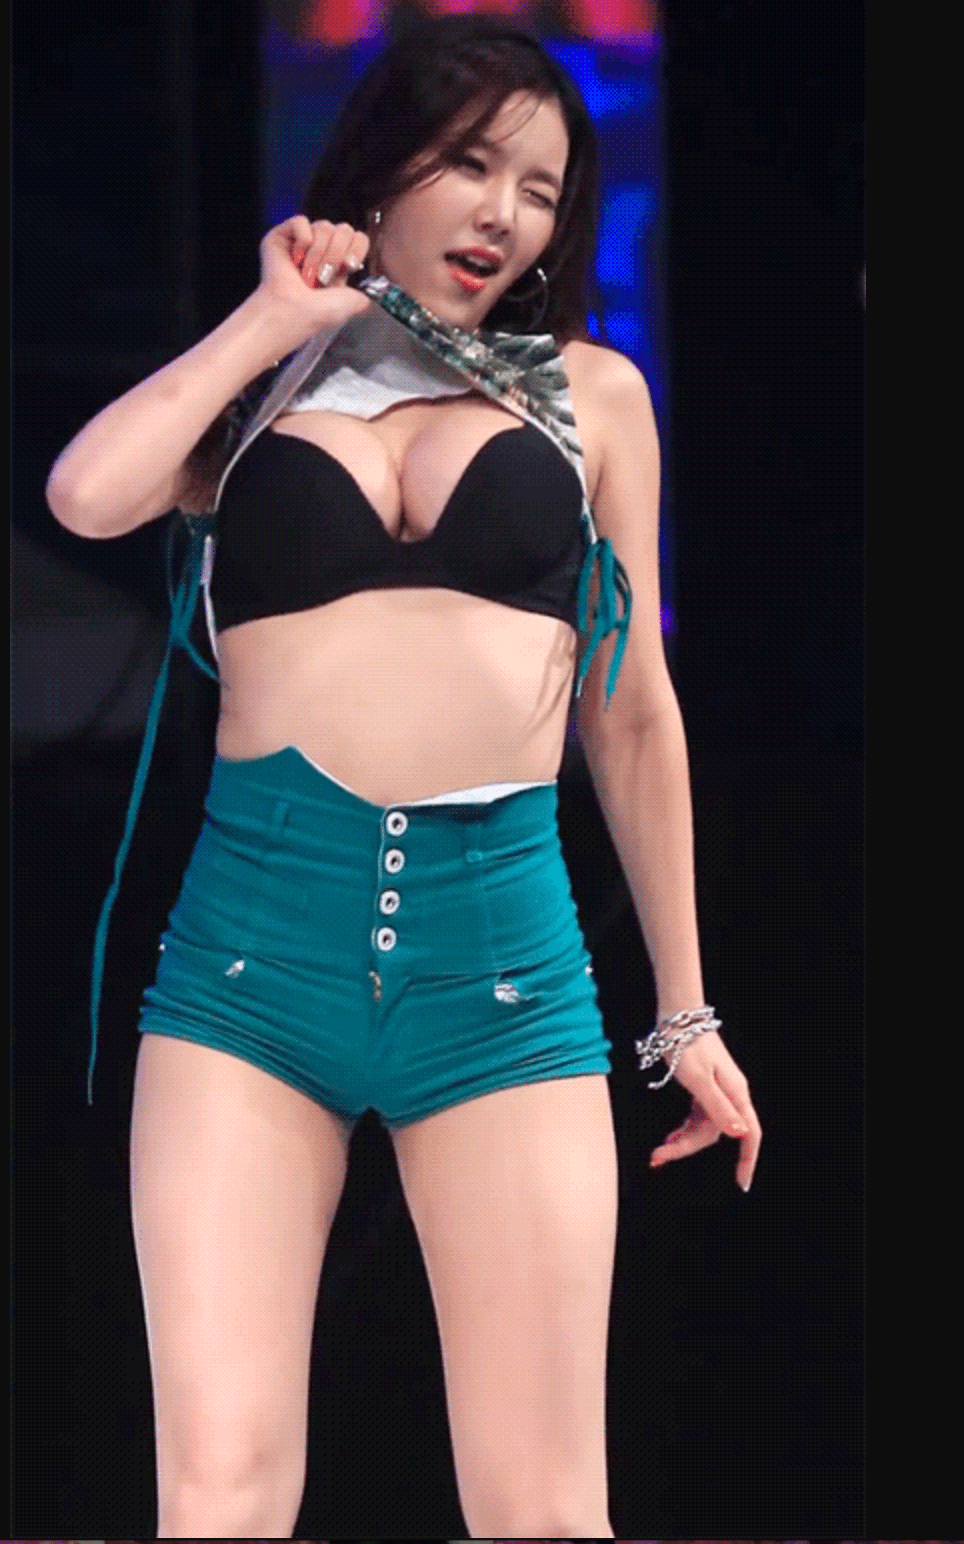 Hyeri Lifts Her Shirt And Exposes Her Bra On Stage Koreaboo